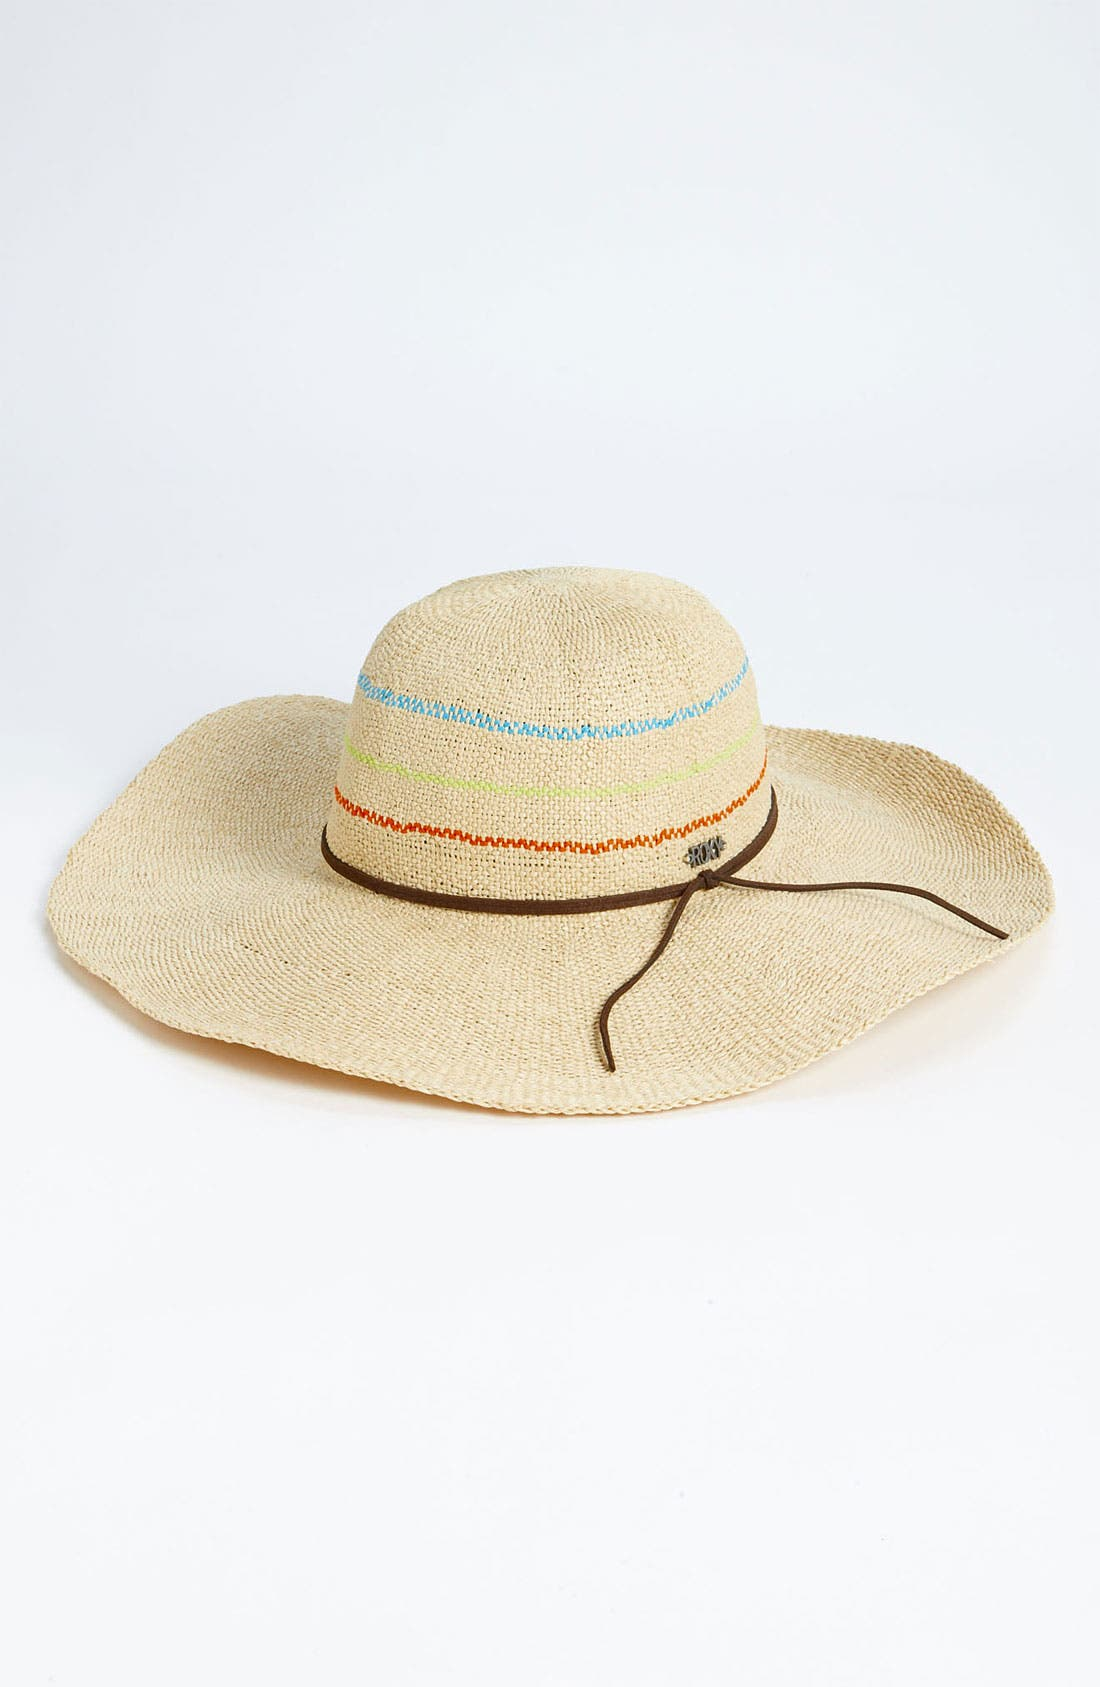 Main Image - 'By the Sea' Hat